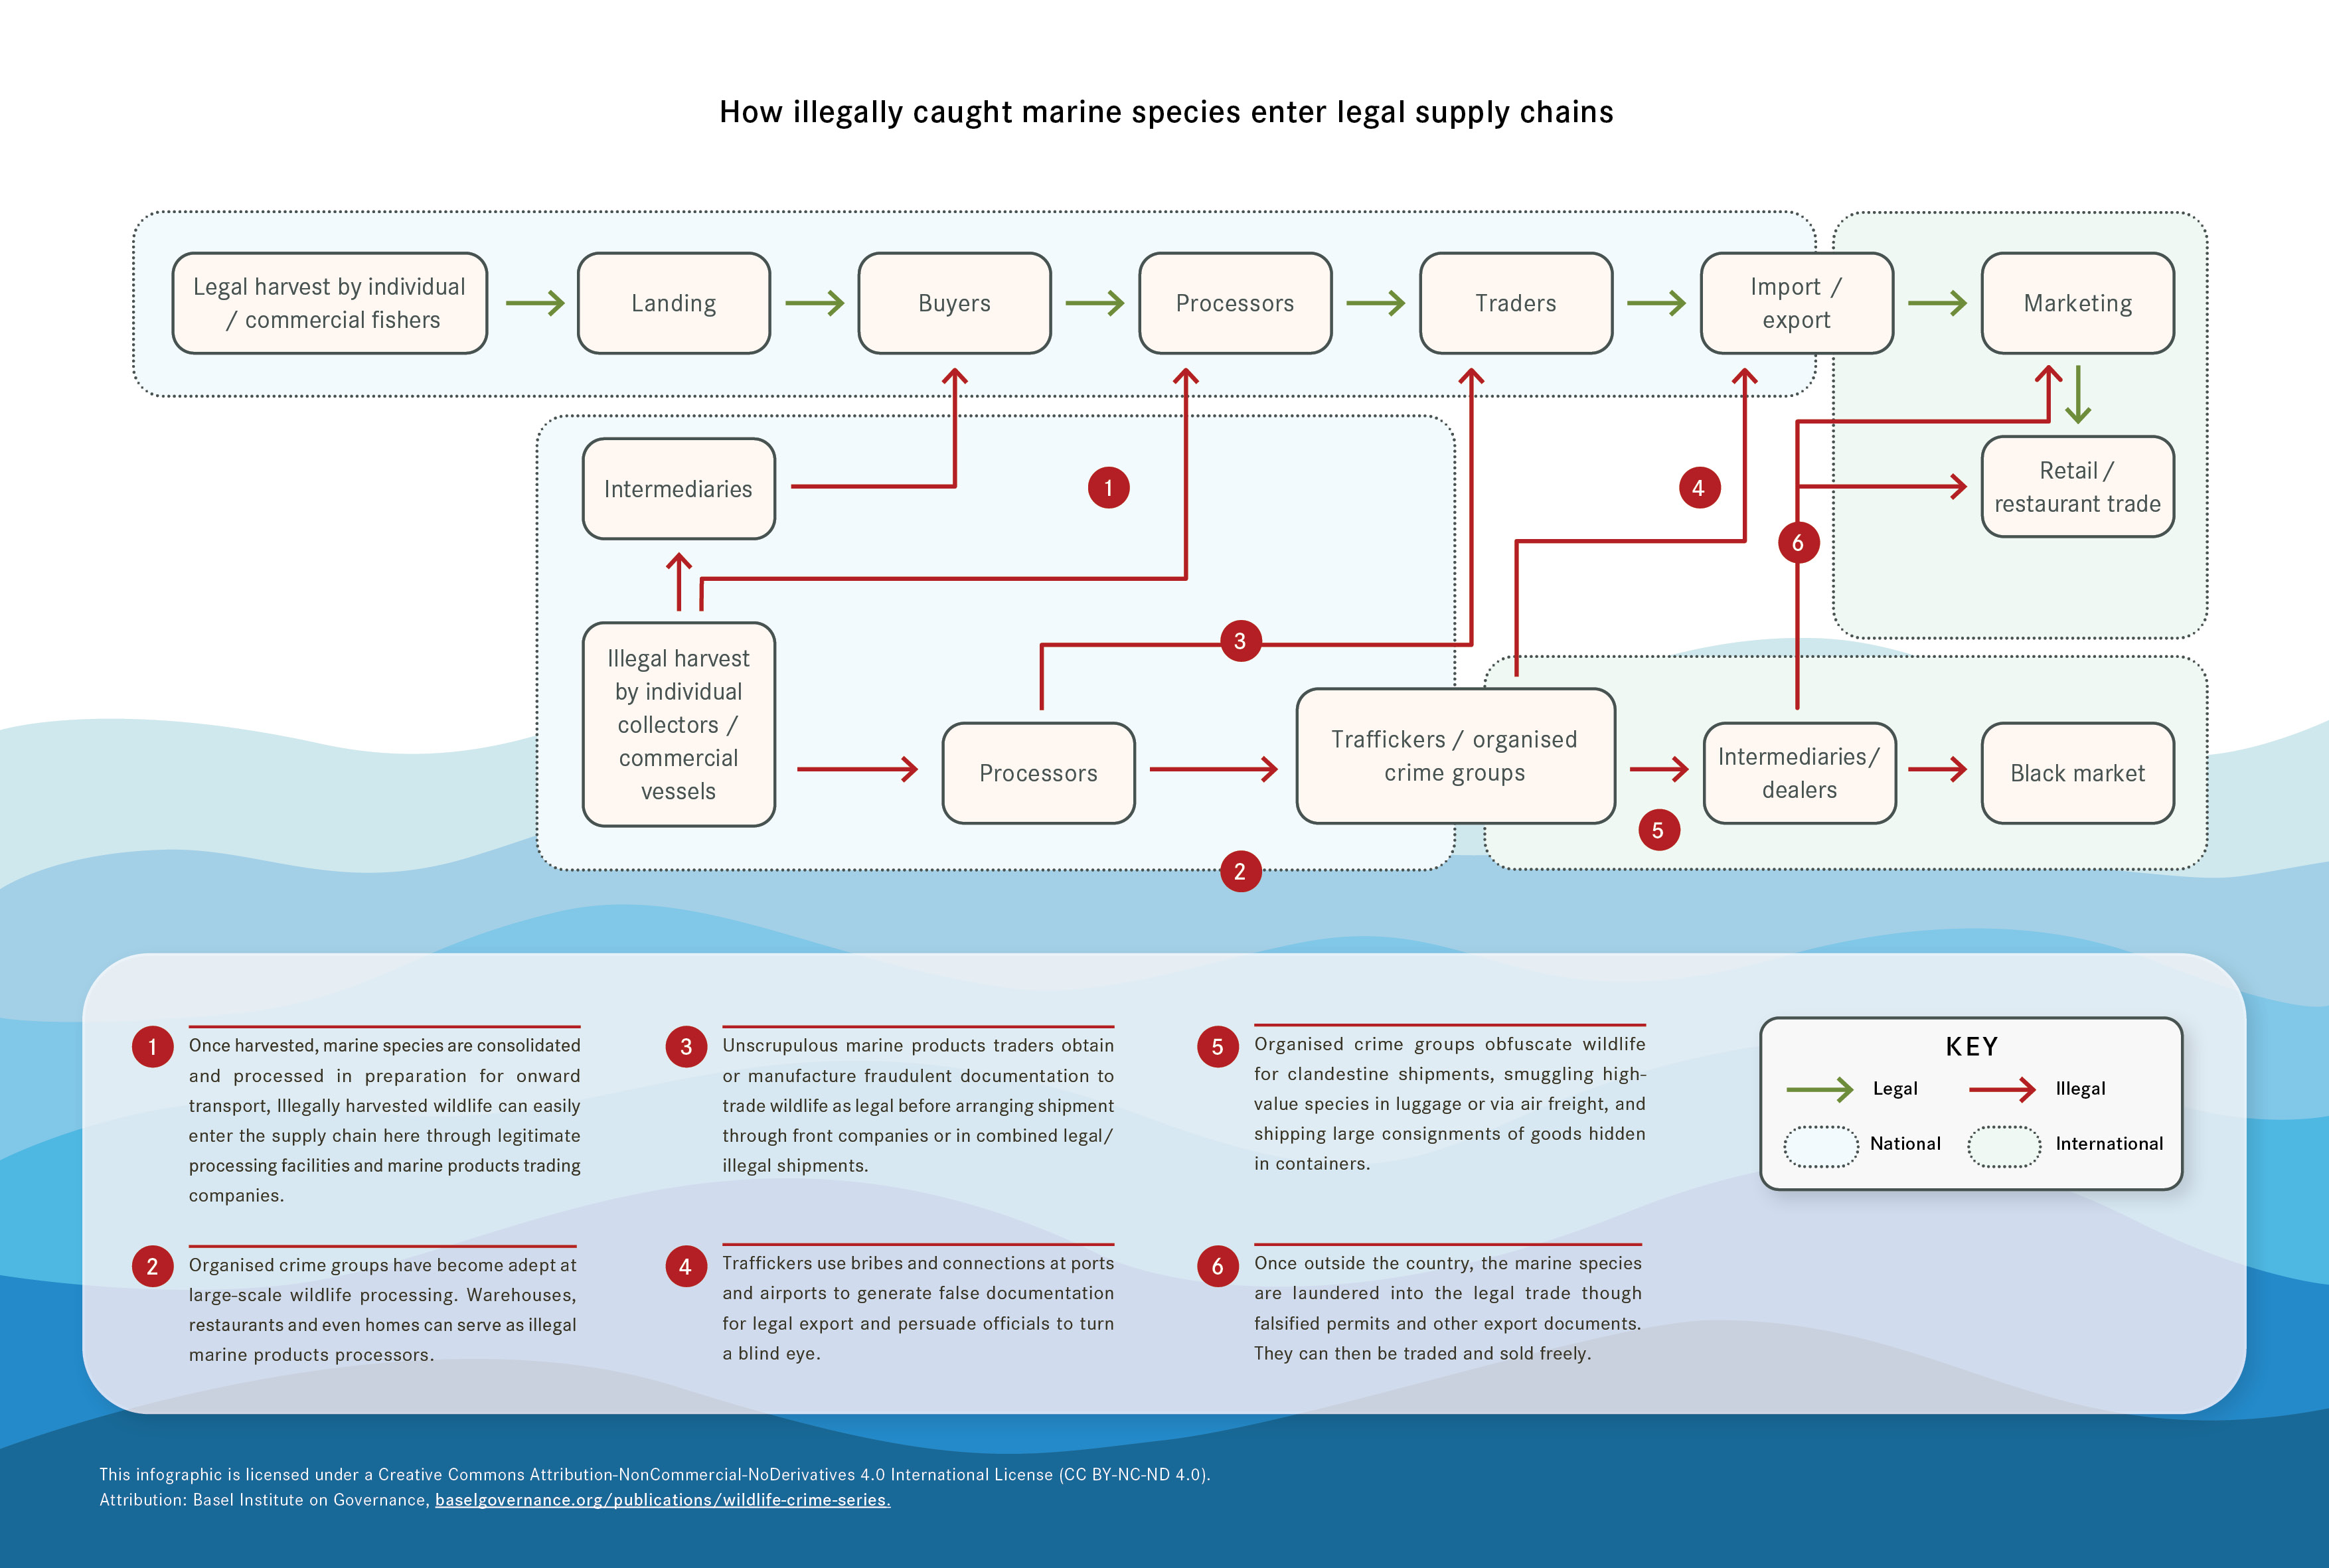 An infographic displaying how illegal caught marine species enter legal supply chains